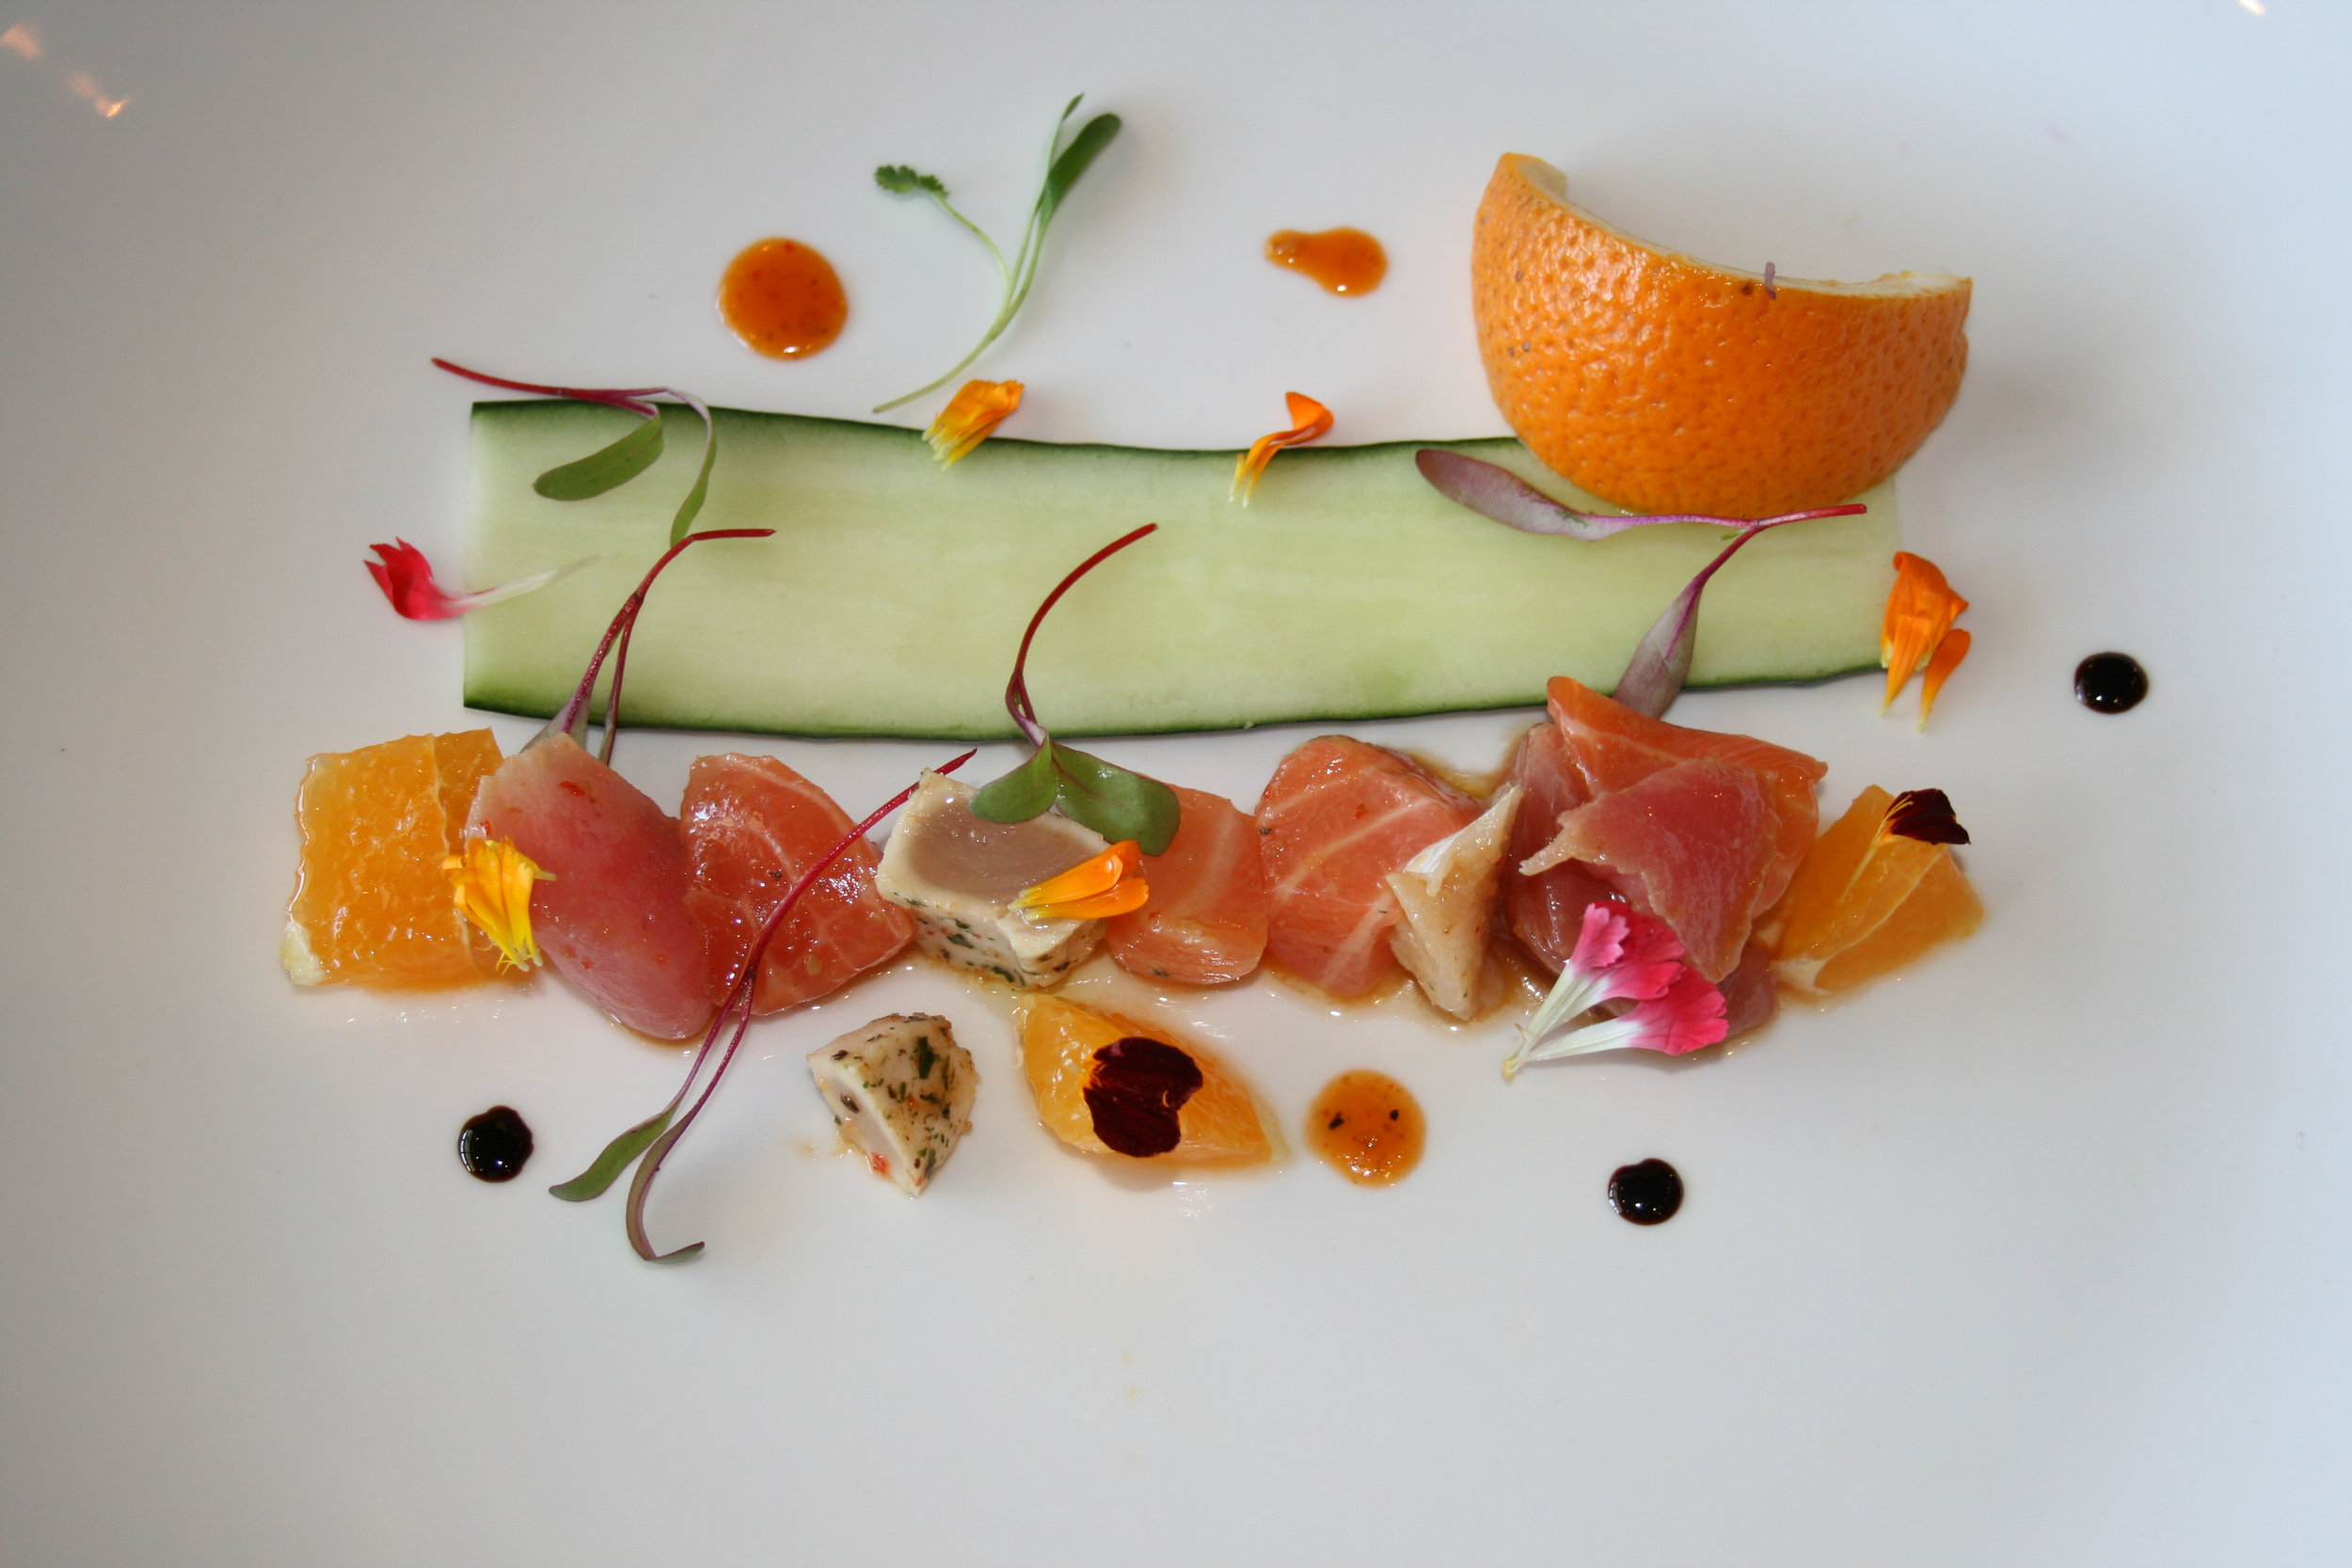 FREESTYLE  At Arigato, ahi and salmon sashimi mingle with zesty citrus and a dose of herbaceous Spring greens.